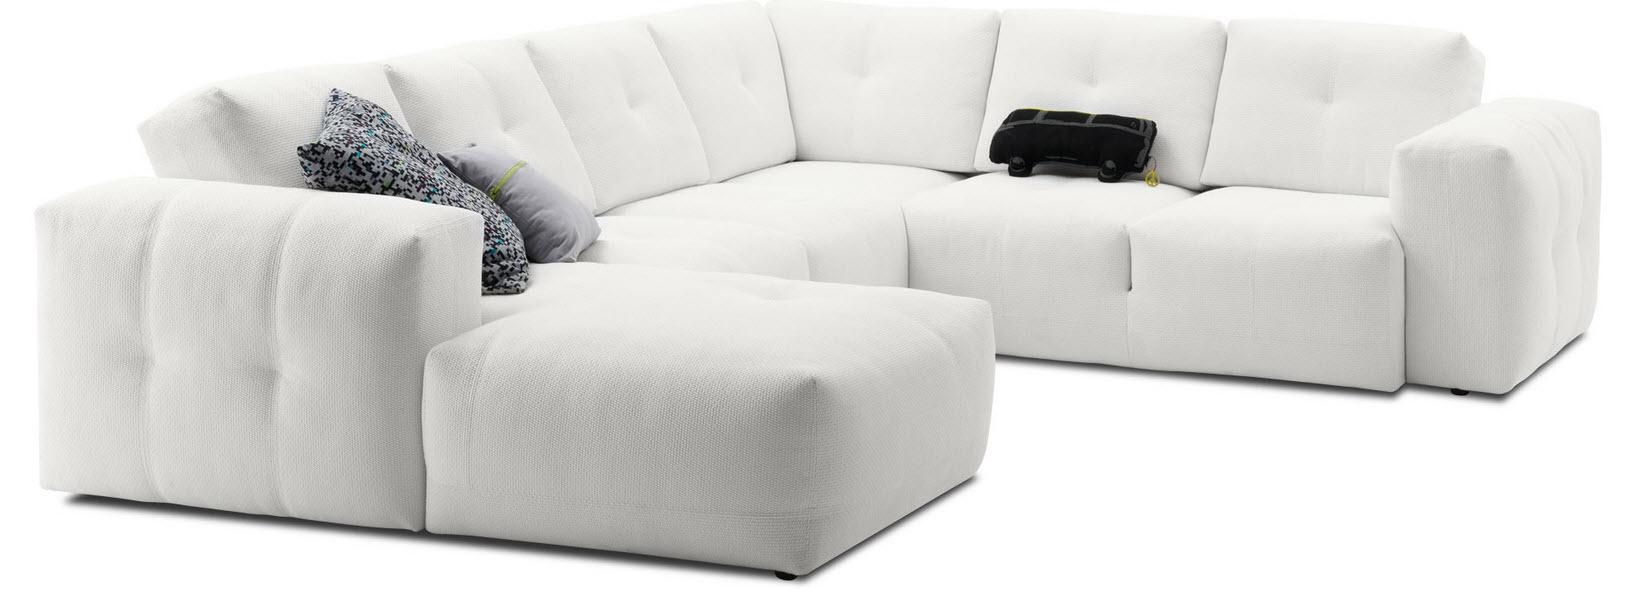 Game On With Our Majorly Modular Sofas | Boconcept Northwest Pertaining To Cloud Sectional Sofas (View 4 of 20)